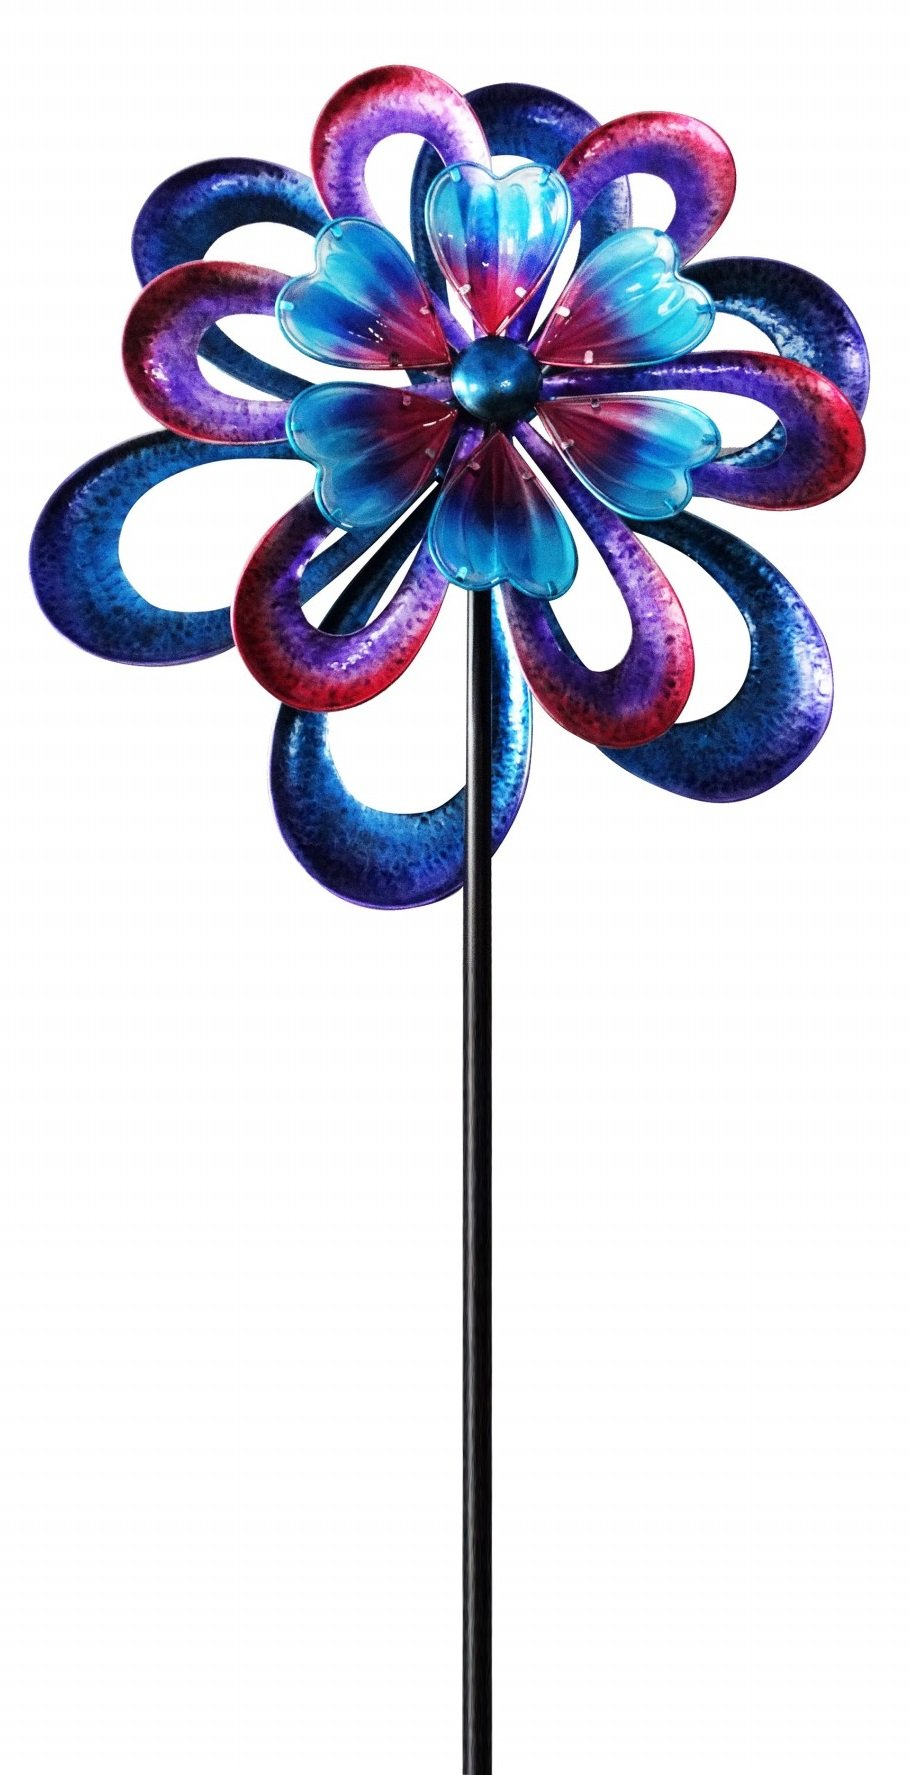 Alpine Corporation KPP428 Metal Round Flower Spinning Garden Stake